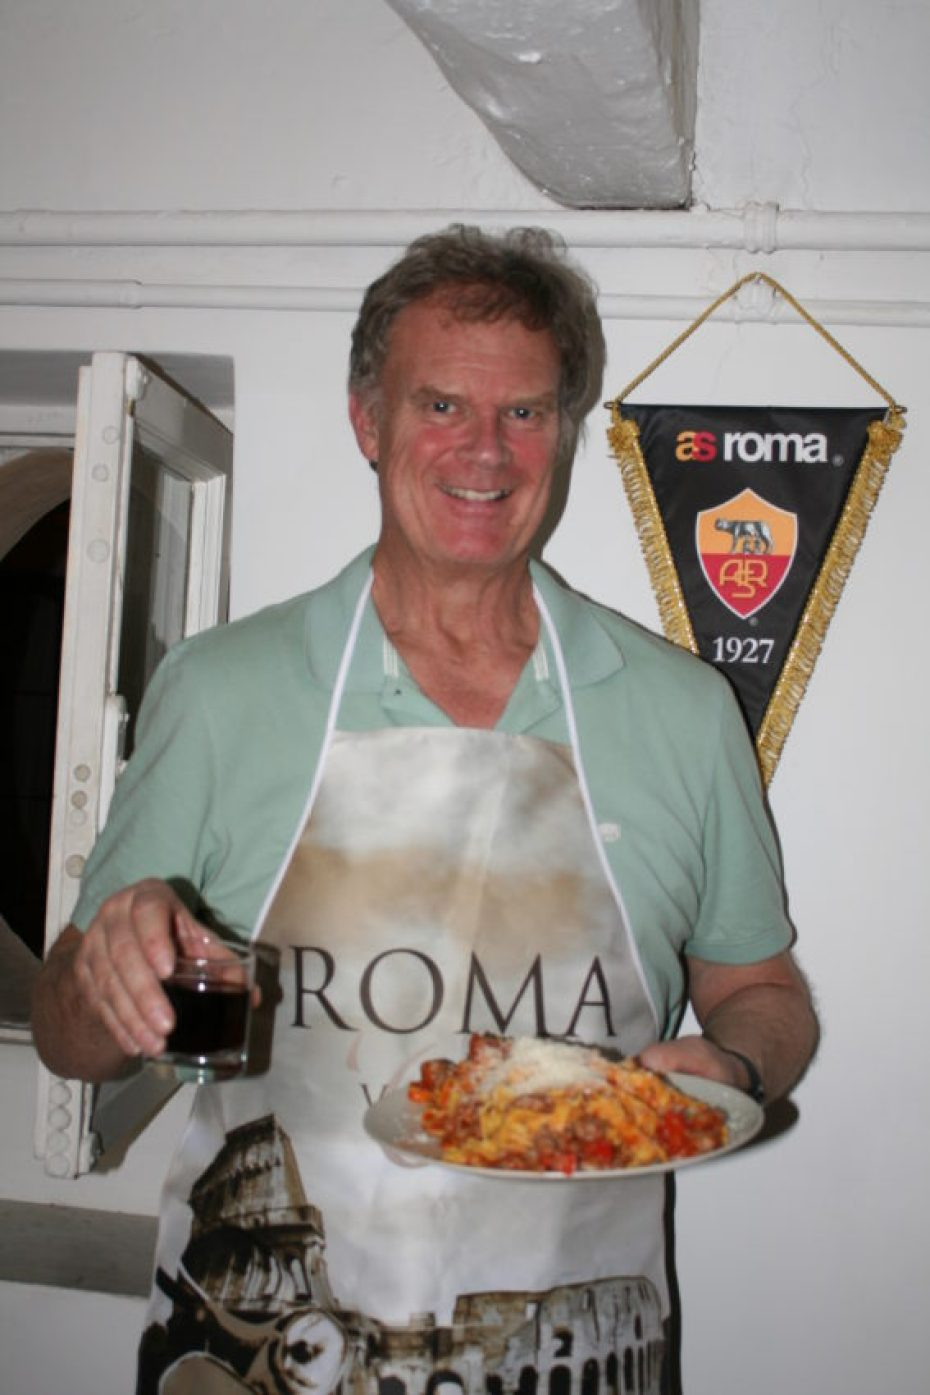 I'm not a great cook, but I'm a good cook in Rome. Fresh pasta and sweet tomatoes can make simple meals delicious.